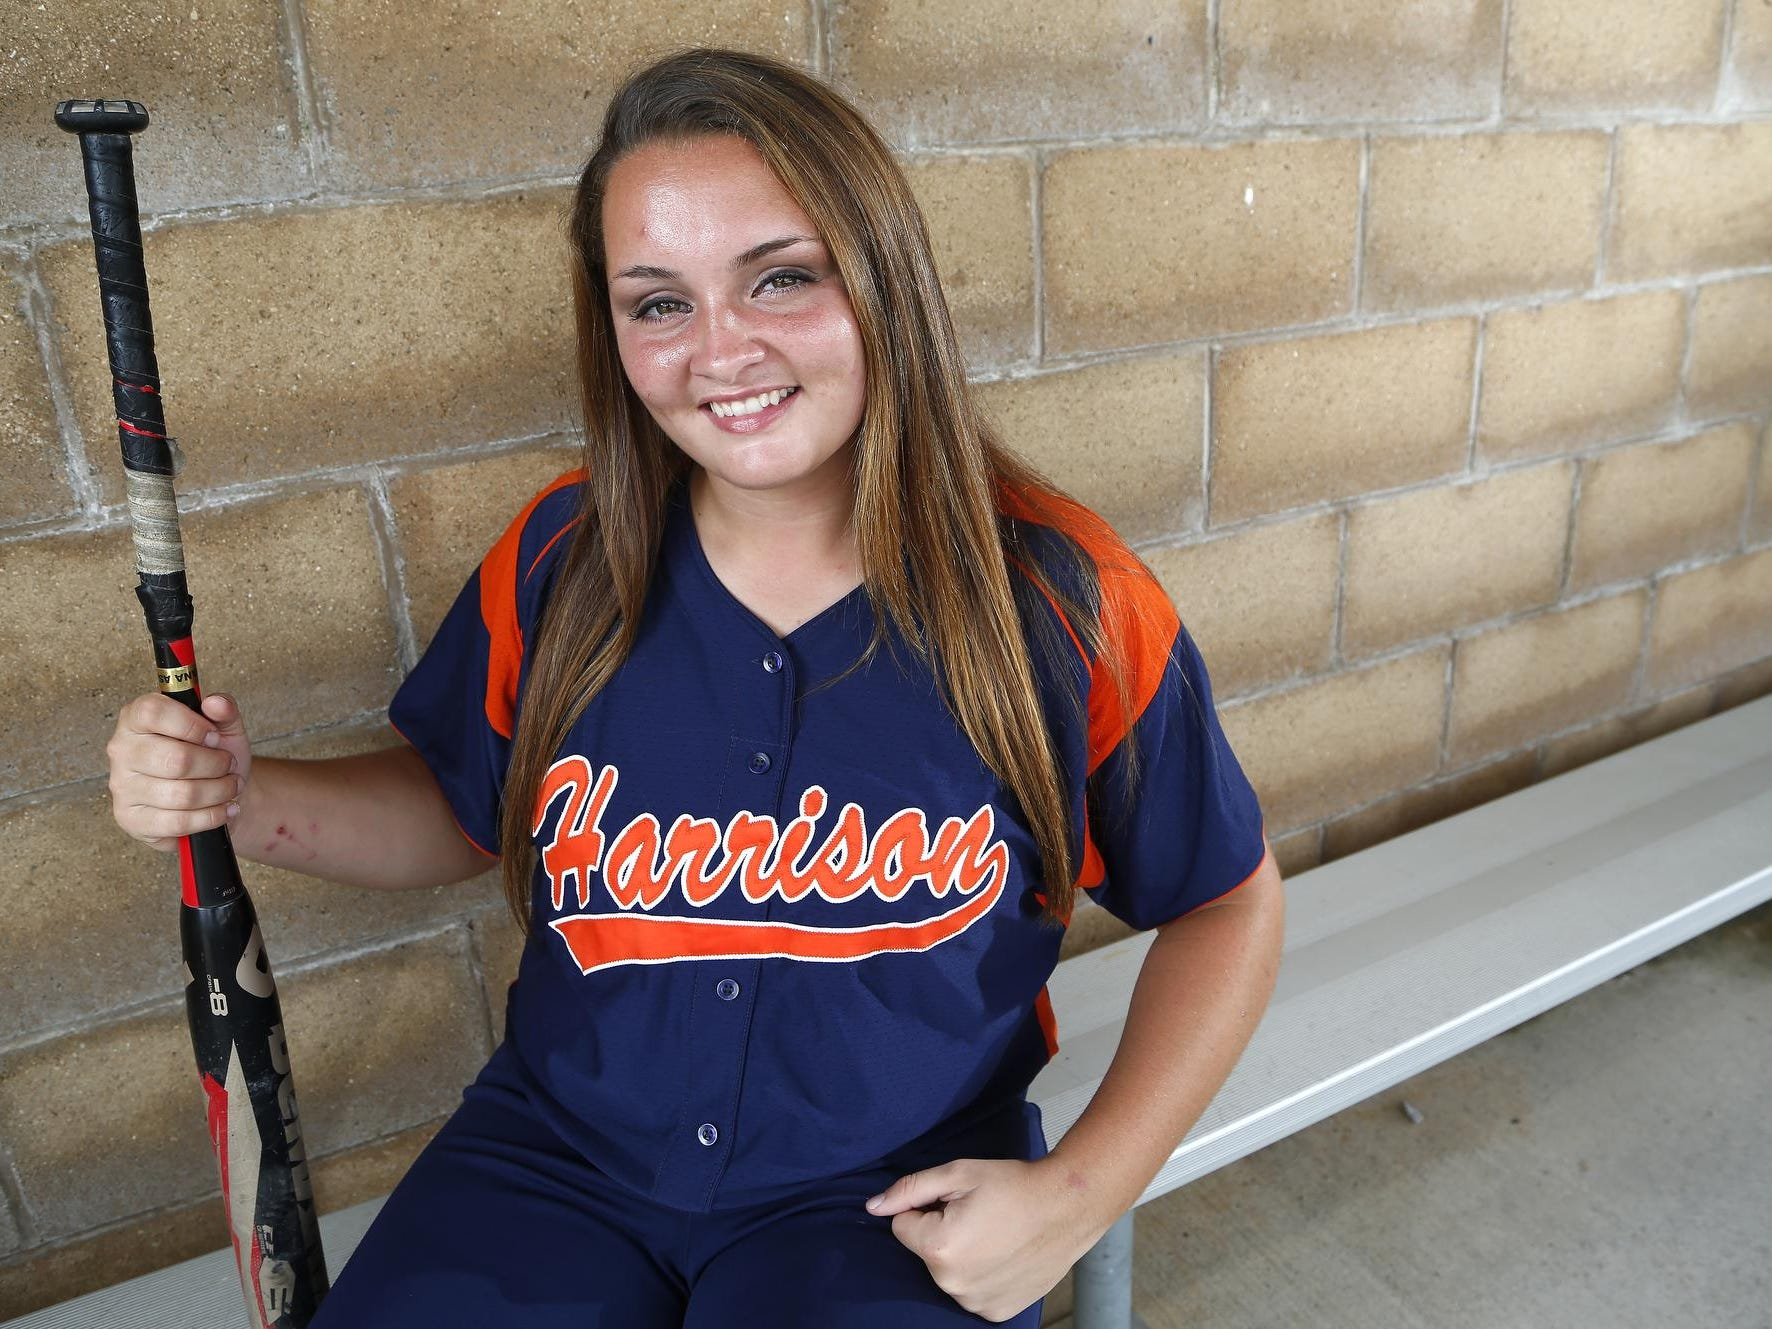 Kaitlynn Moody of Harrison High School is the 2015 Journal & Courier Big School Player of the Year for softball.